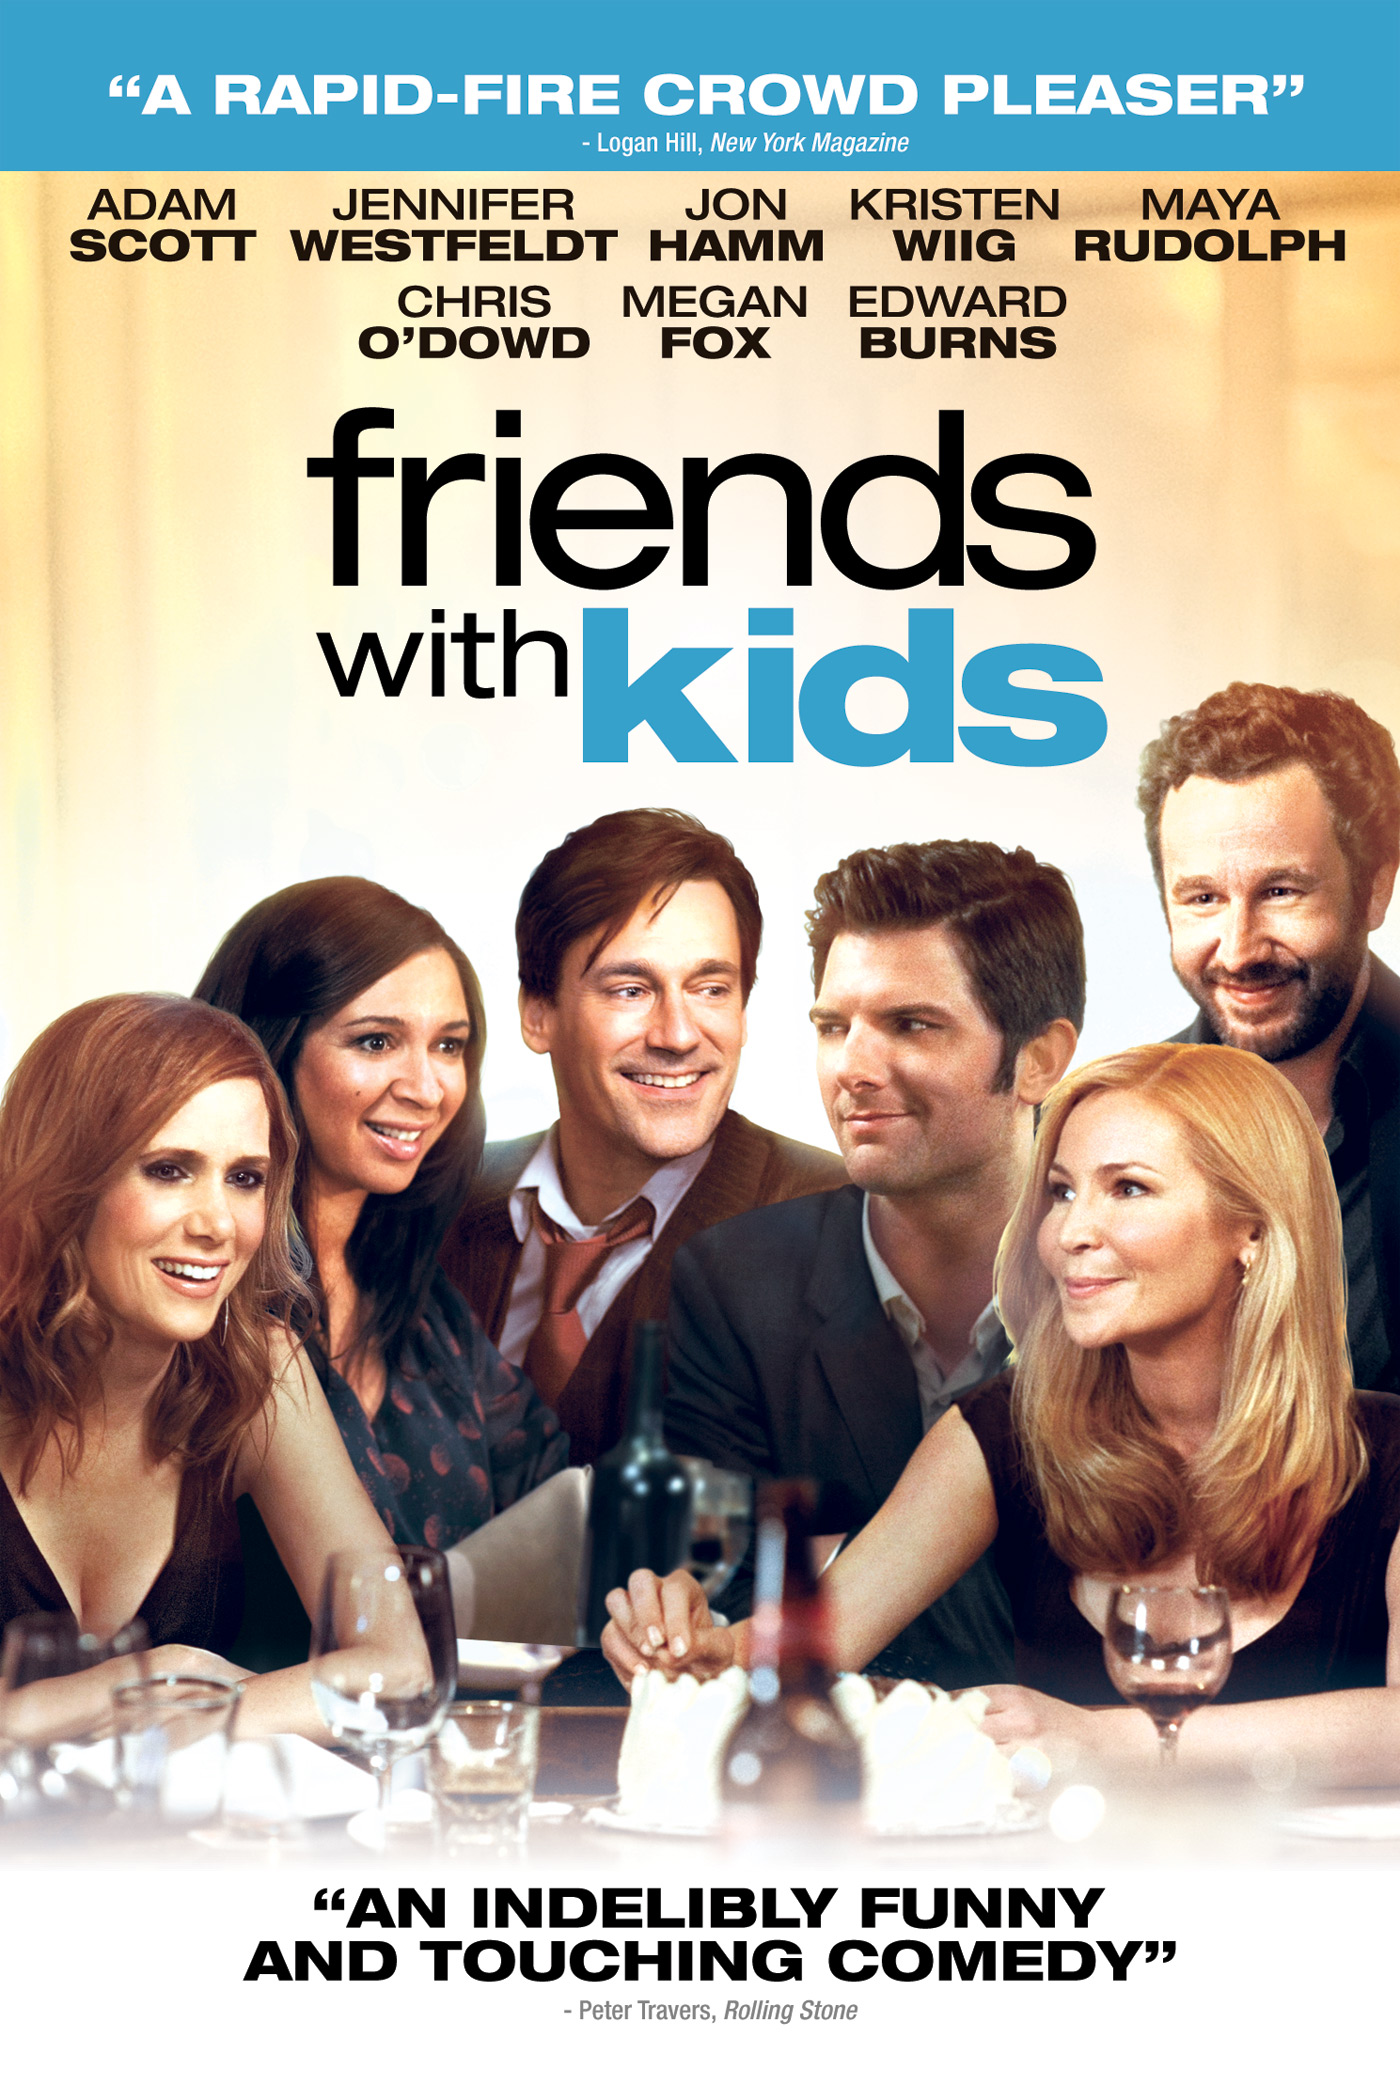 Friends With Kids Movie Poster | www.imgkid.com - The ... Friends With Kids Poster